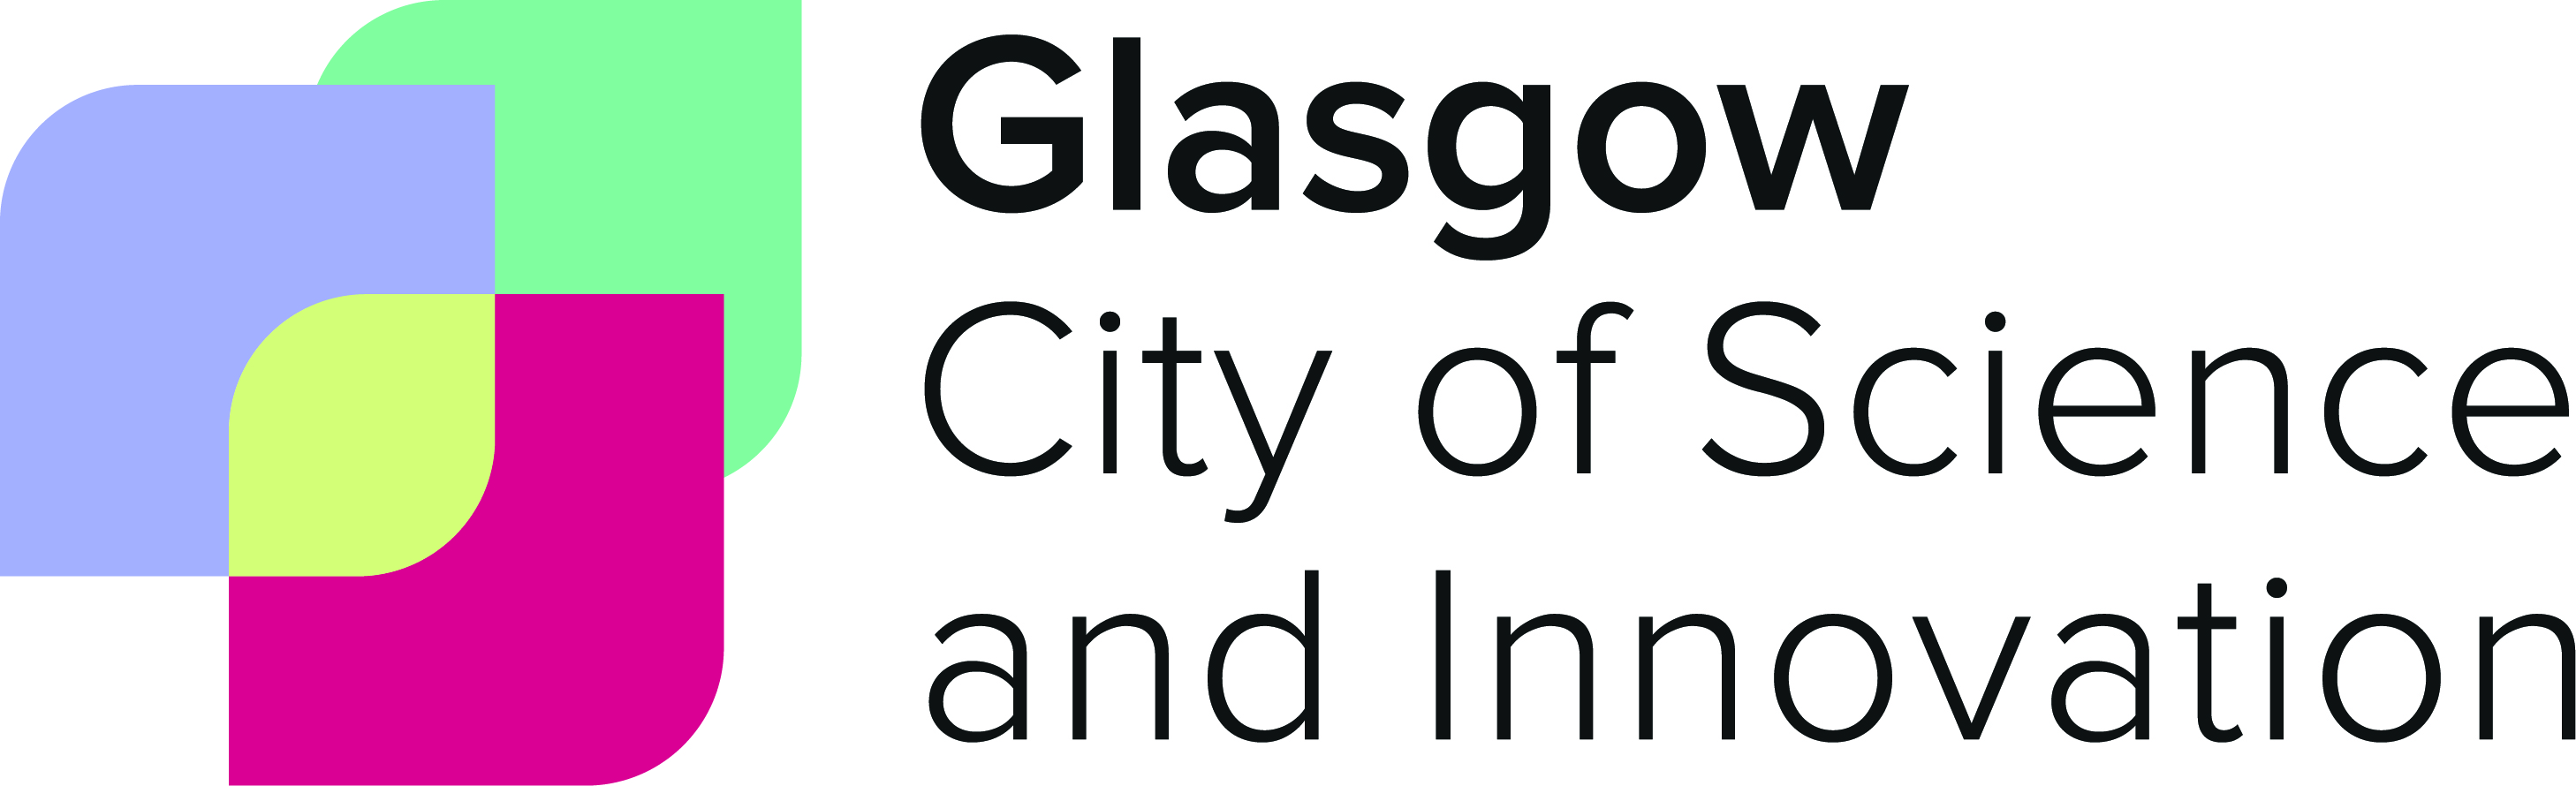 The logo of Glasgow City of Science